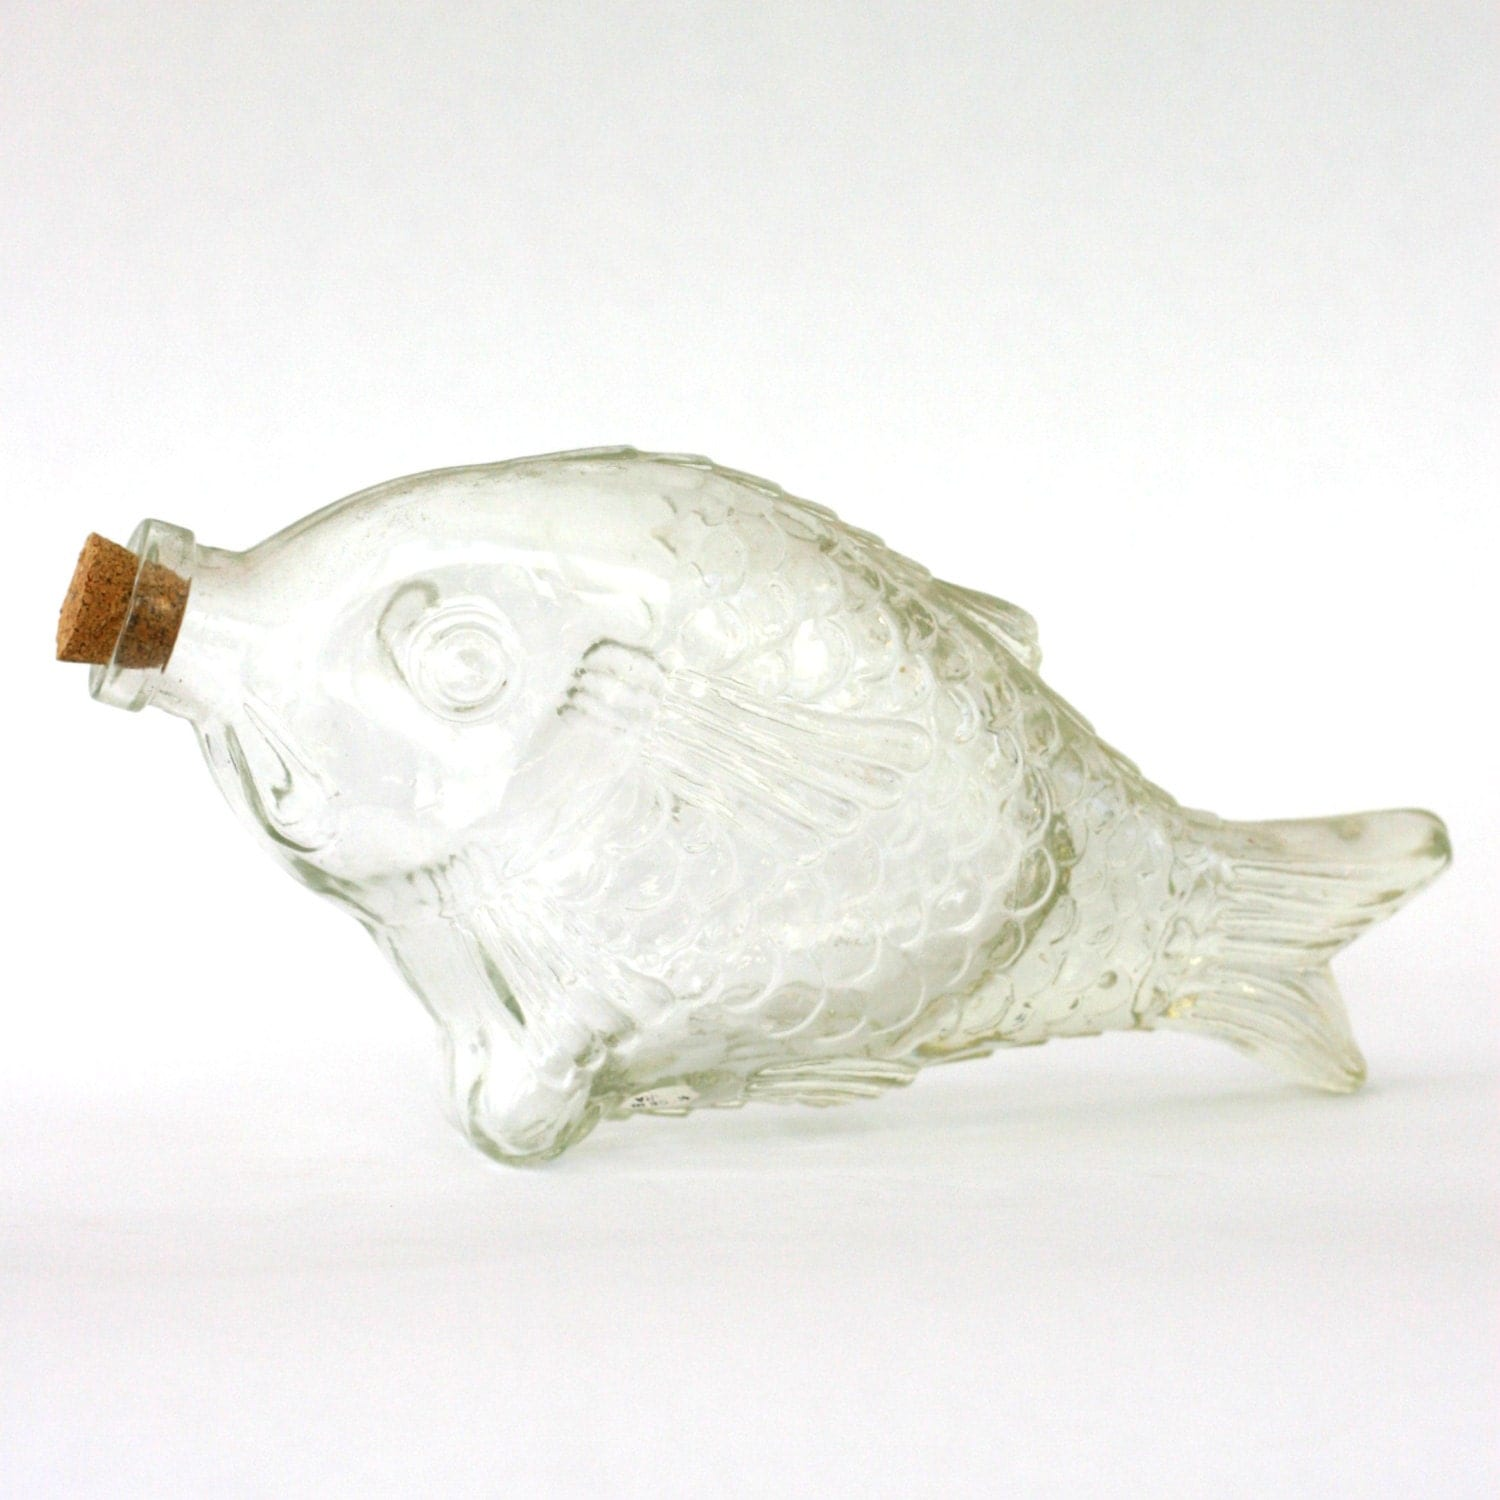 Vintage glass fish bottle decanter figurine koi fish for Koi fish figurines